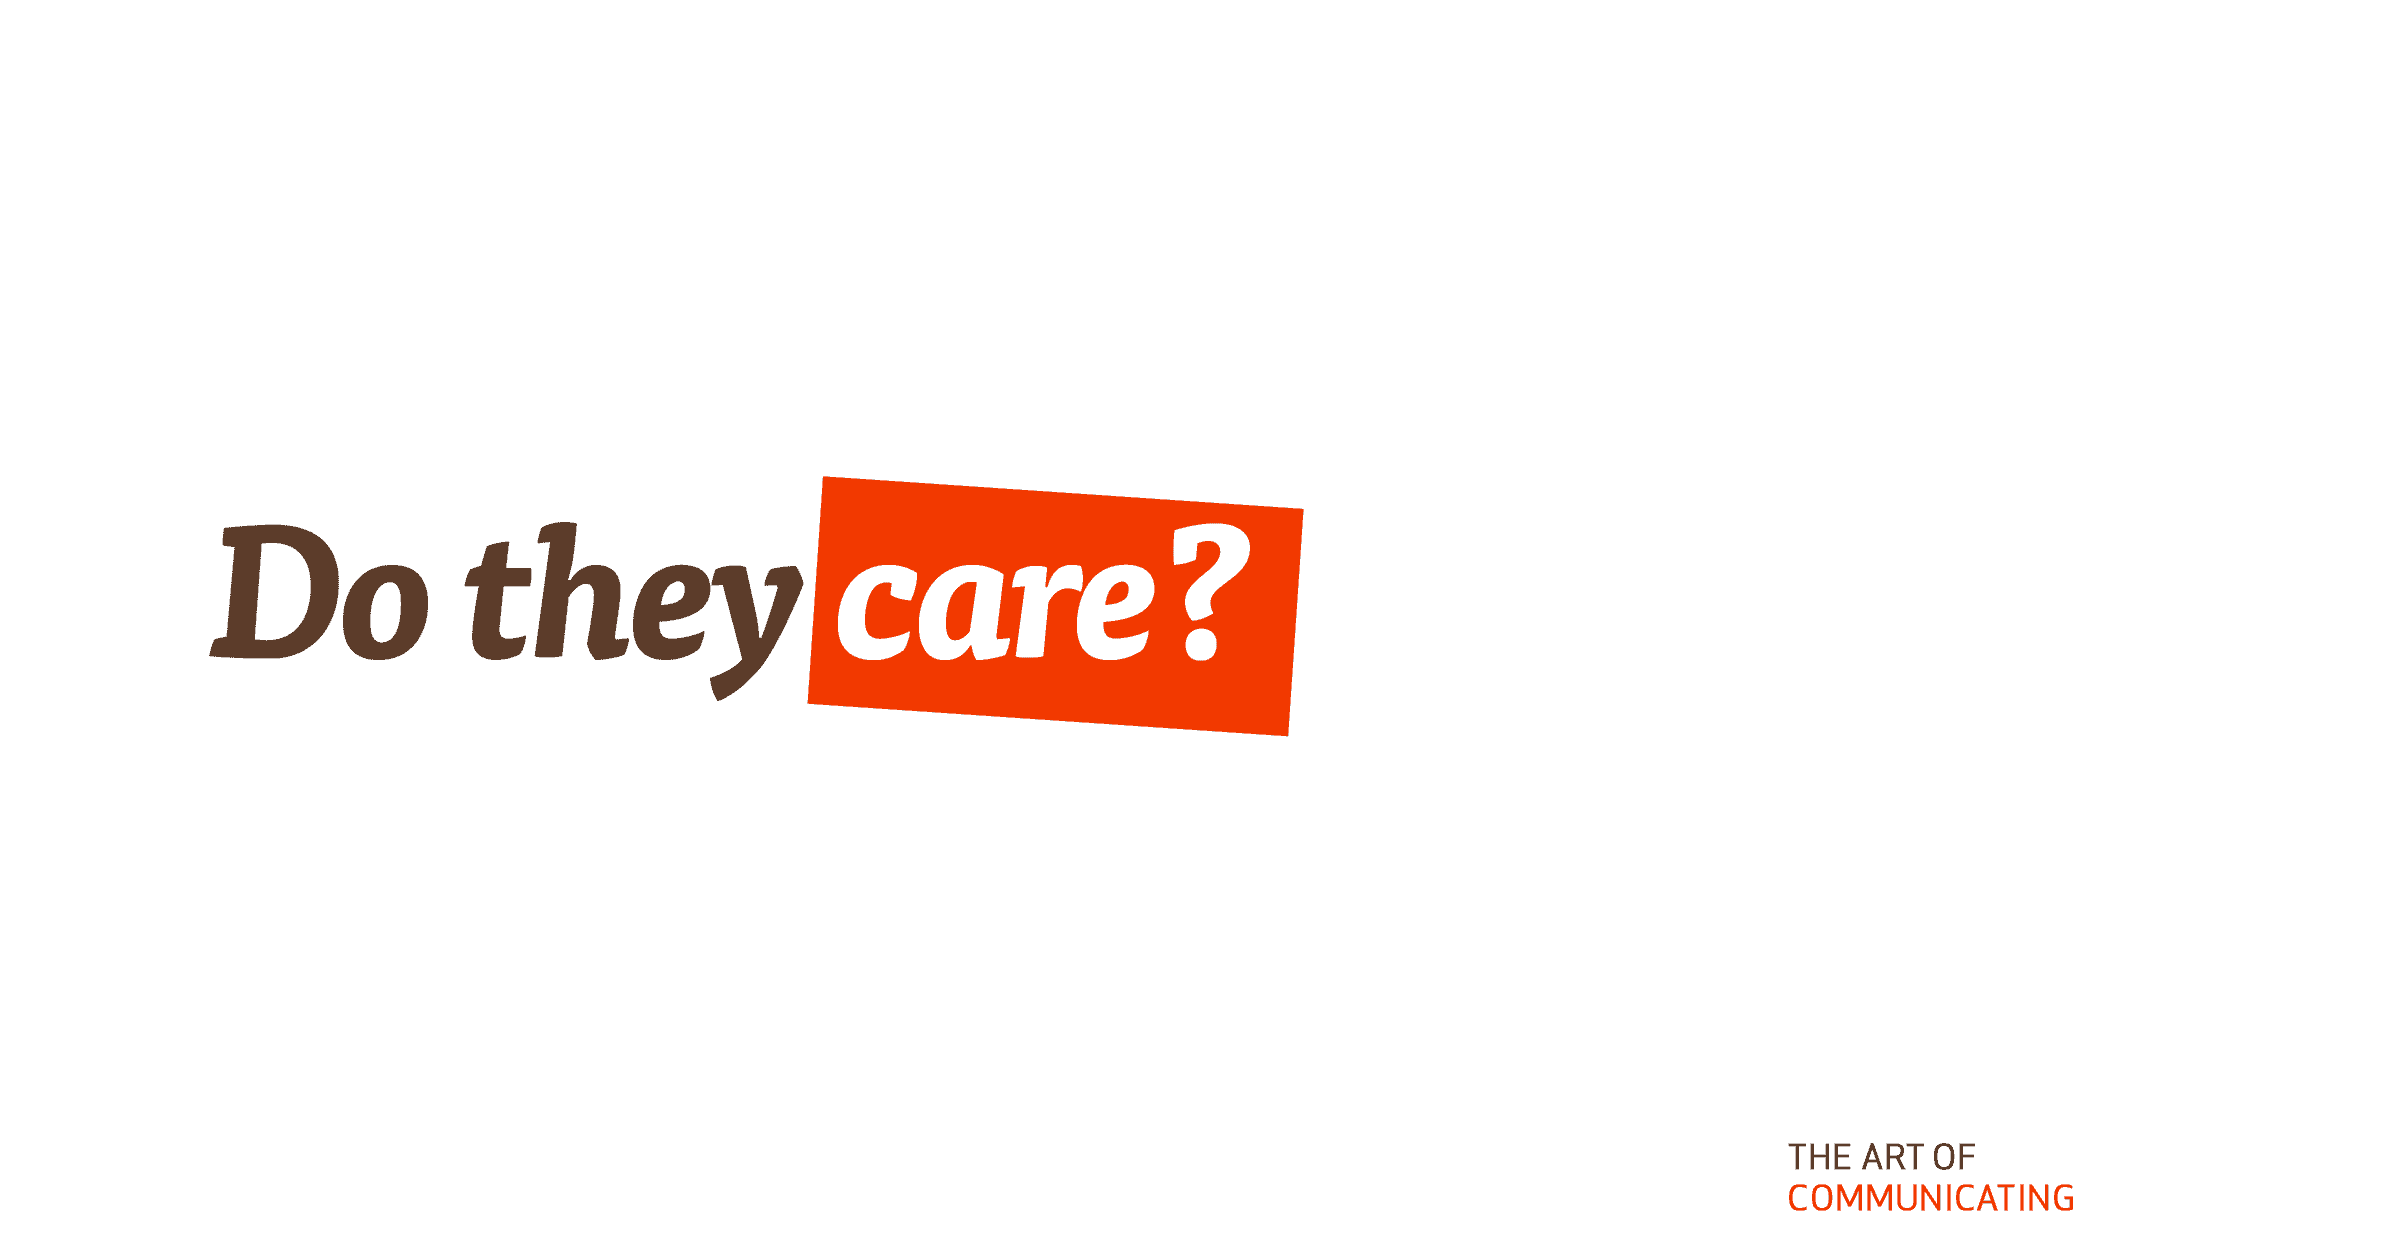 Do they care?